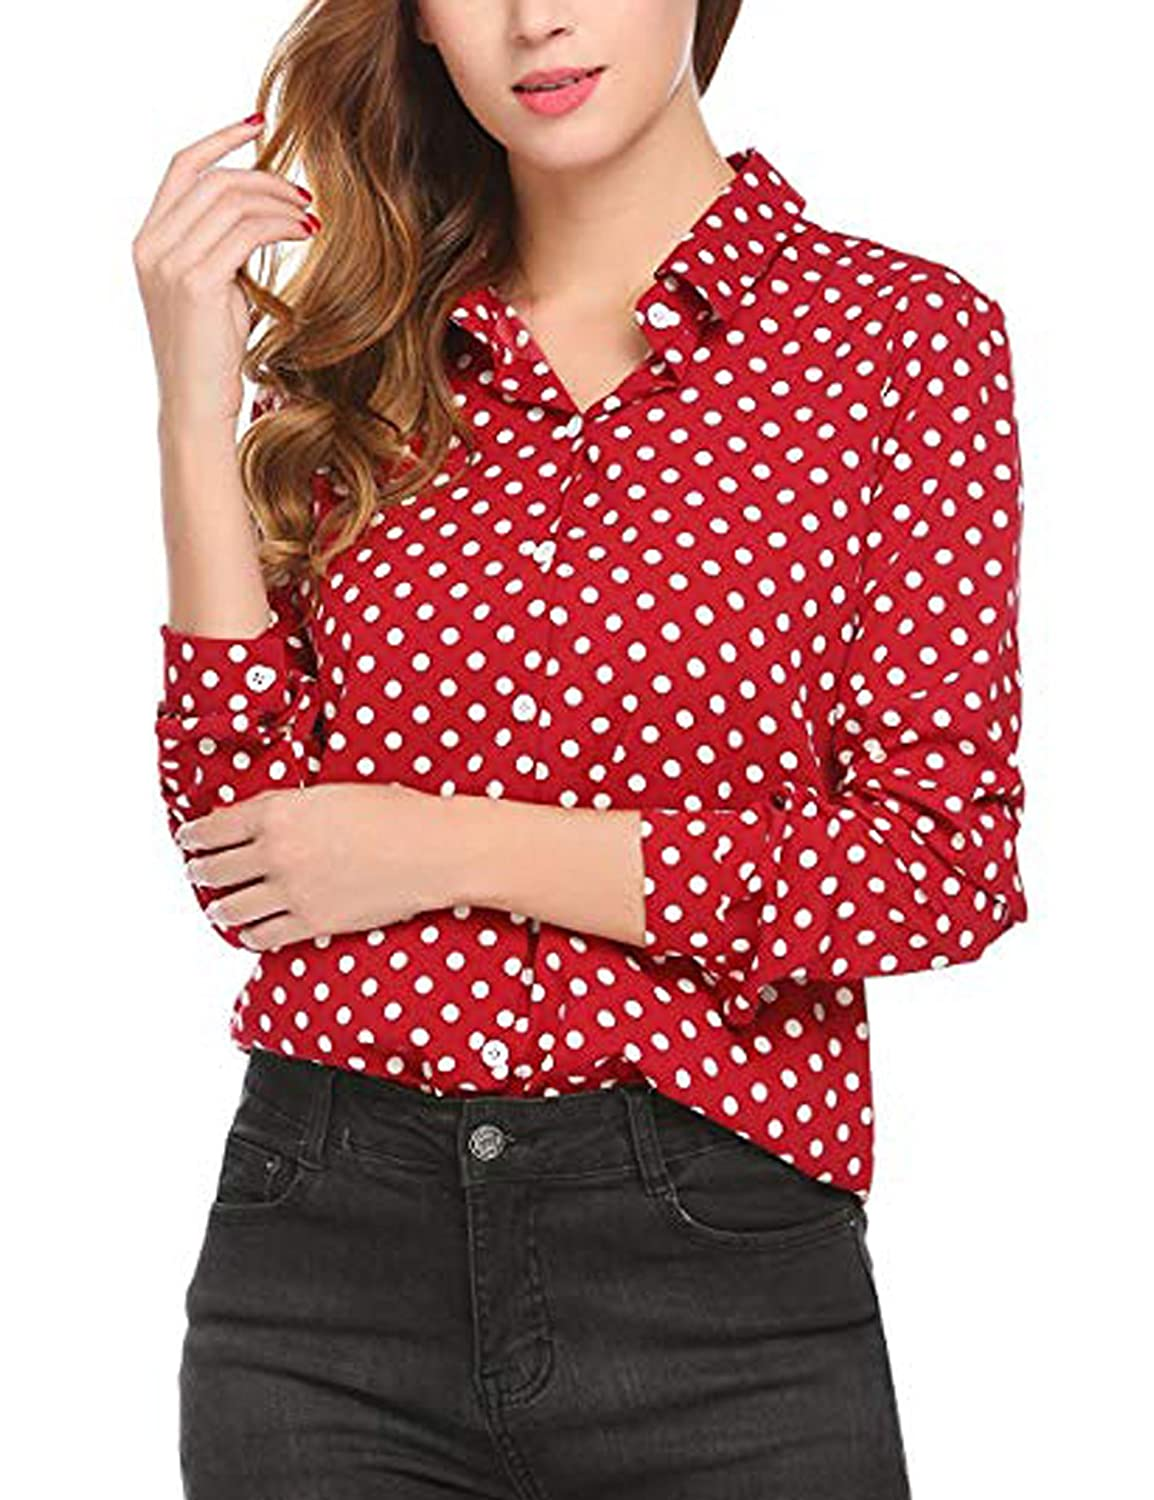 6280af10 ... made of chiffon, loose, comfortable and soft in dressing. Turn down  collar, long sleeve, polka dot, button down shirt. Casual loose comfortable  fit to ...